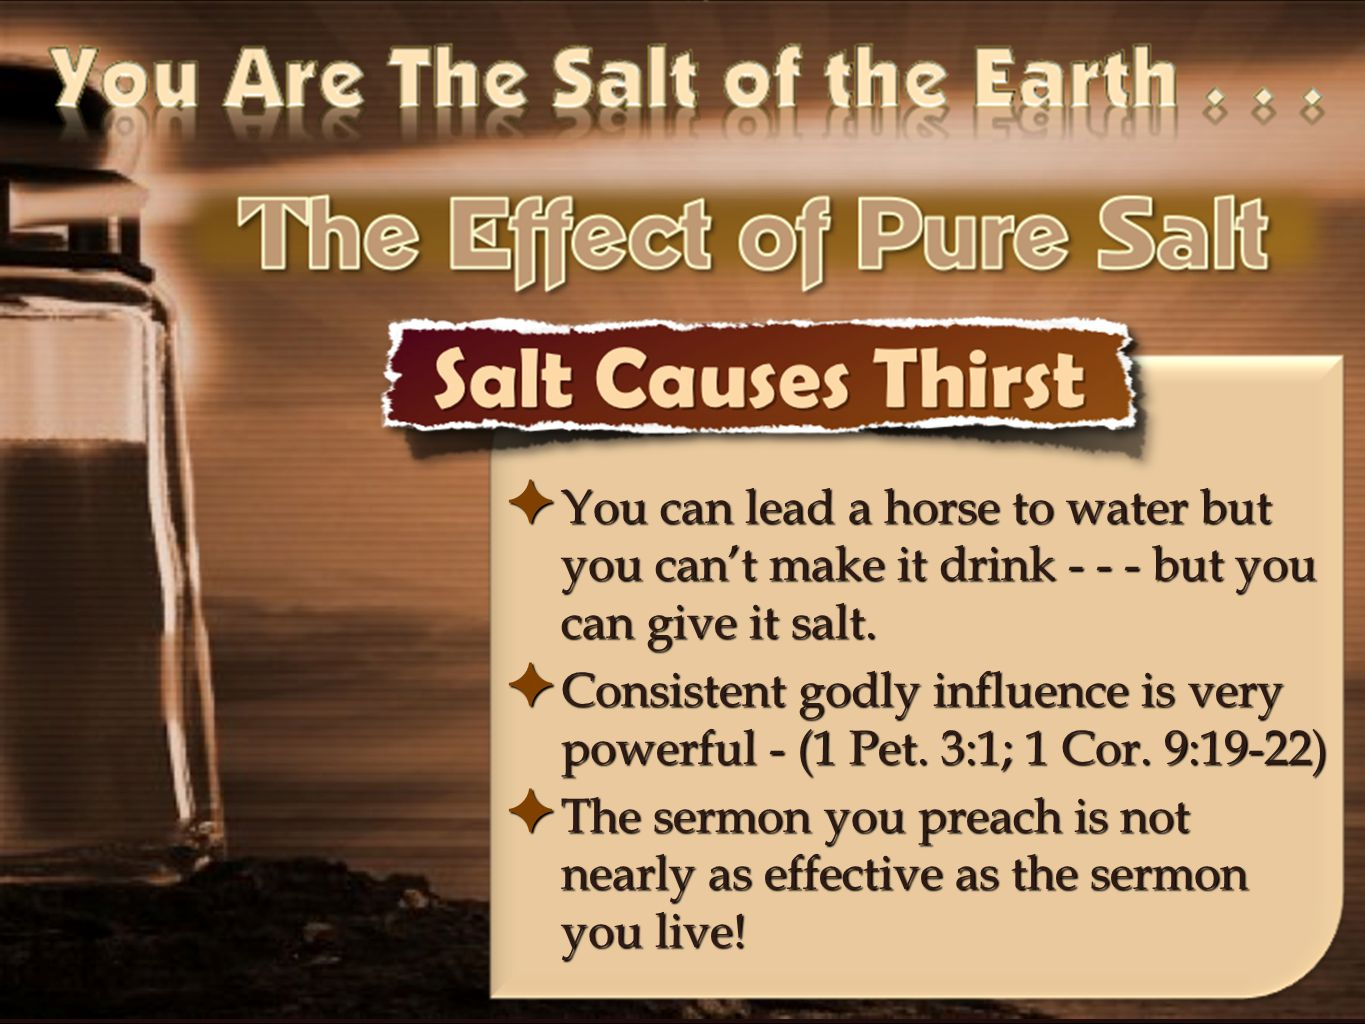 ✦ You can lead a horse to water but you can't make it drink - - - but you can give it salt. ✦ Consistent godly influence is very powerful - (1 Pet. 3: